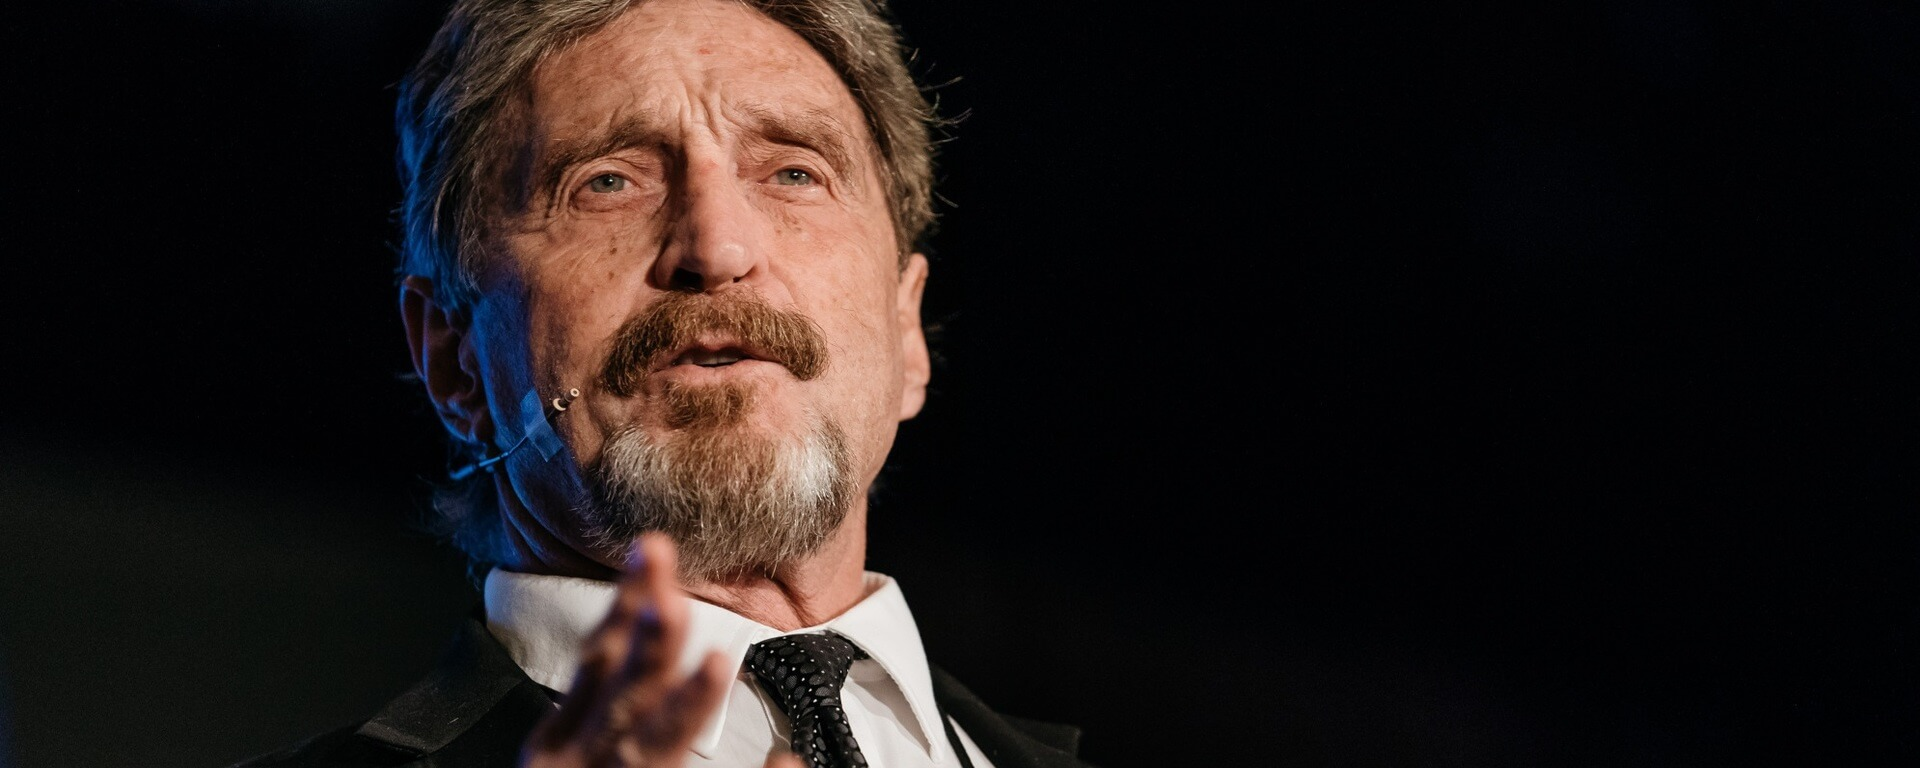 McAfee regains control of the Ghost cryptocurrency 20